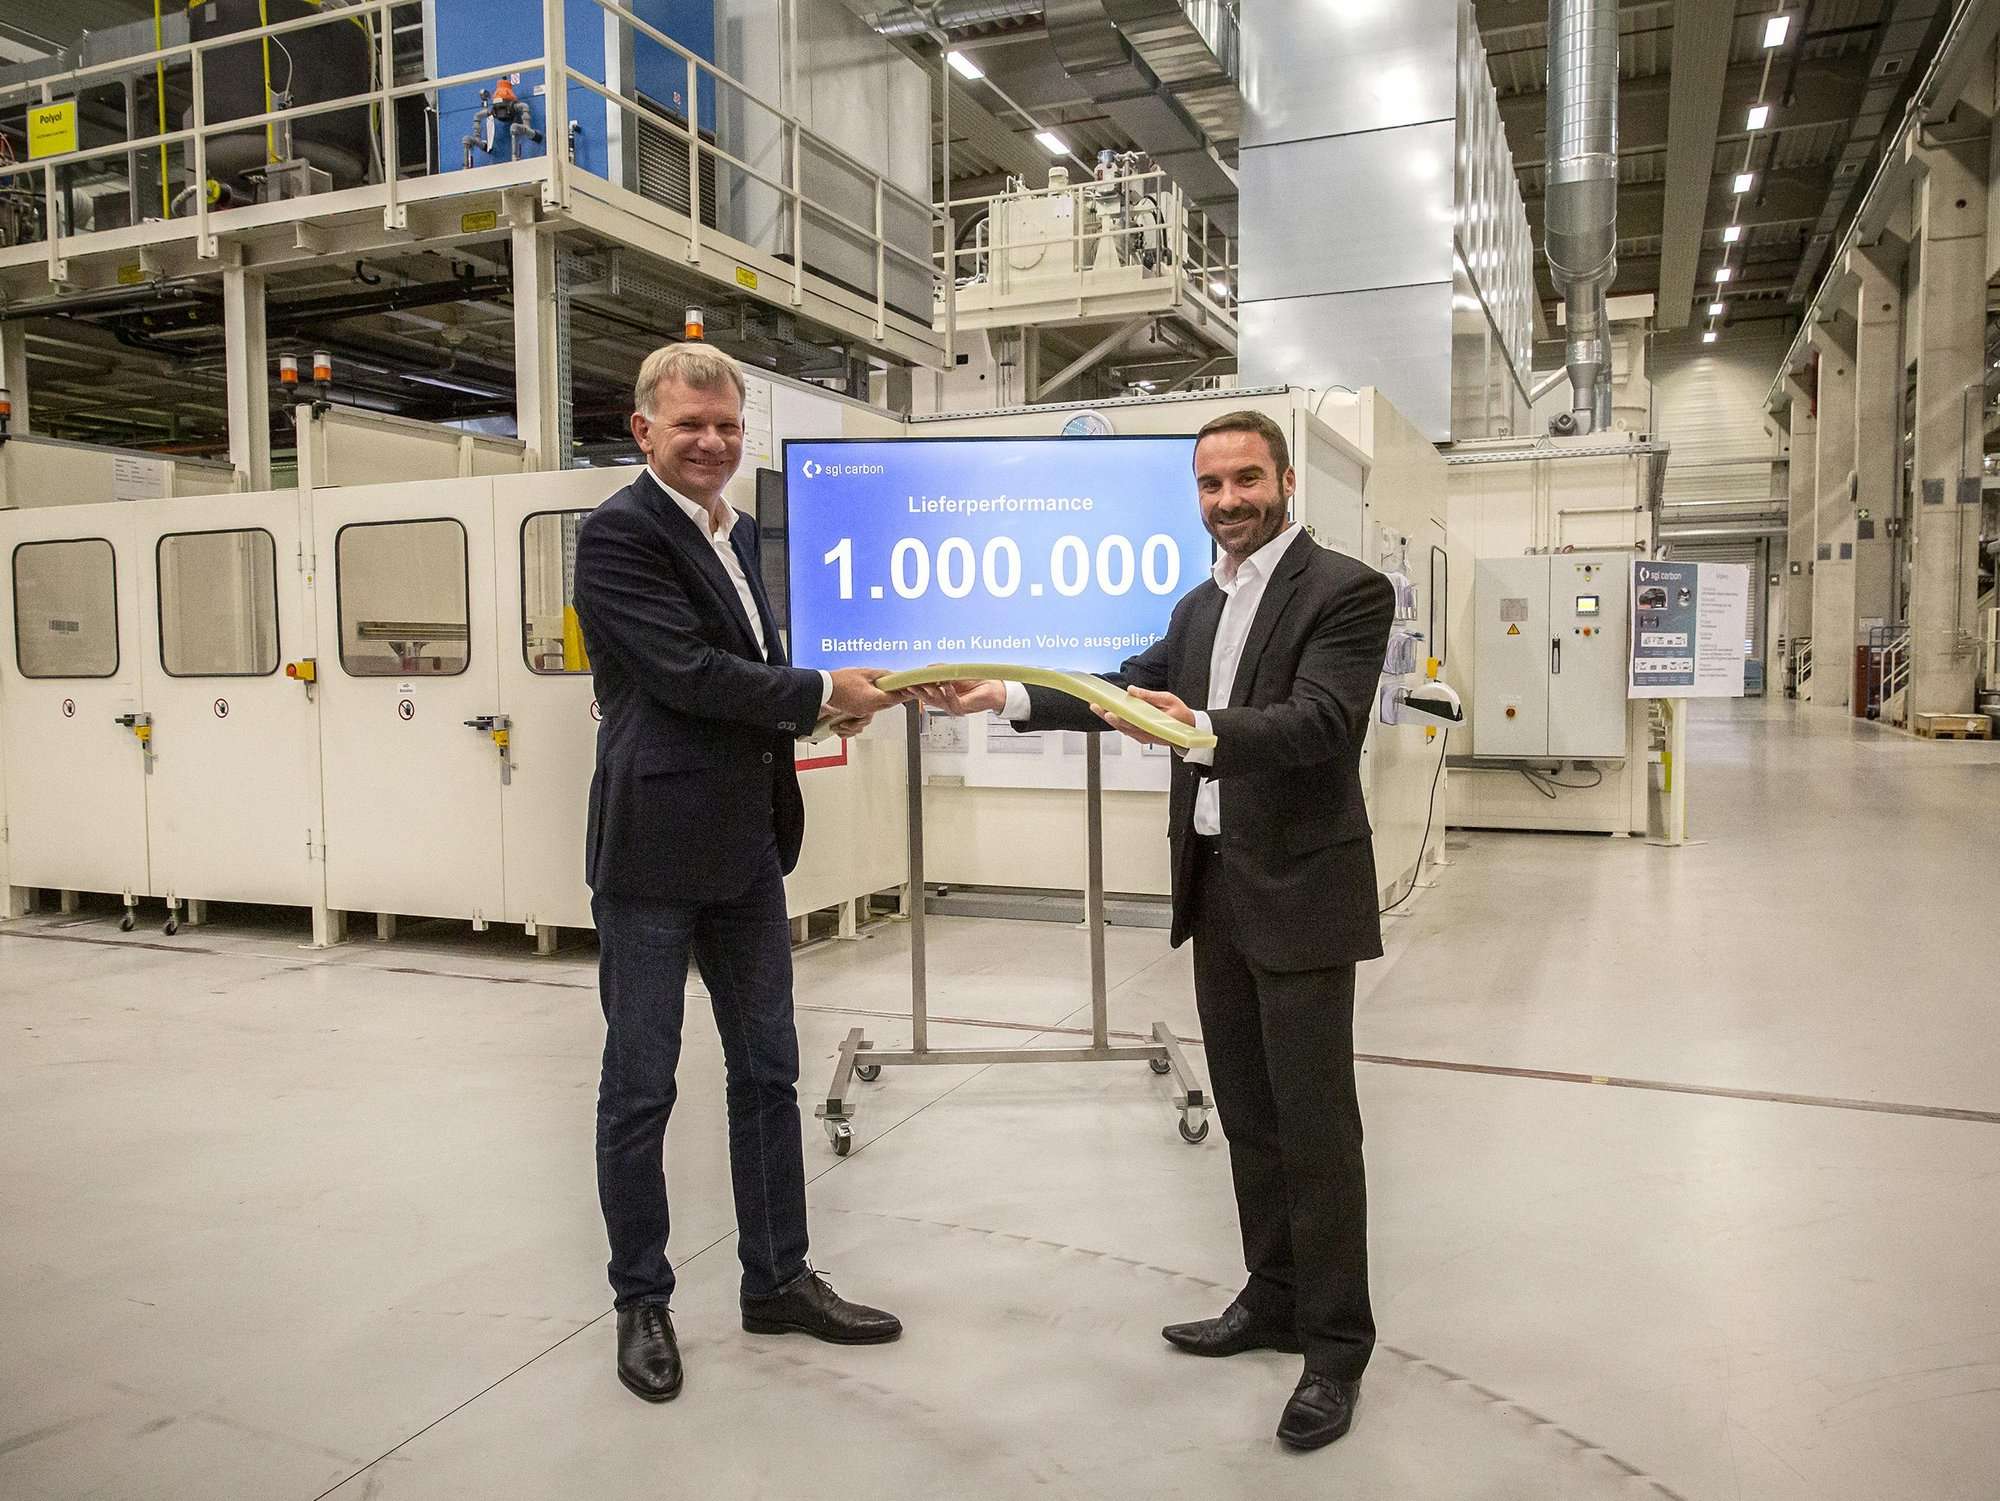 Photo: Dr. Jürgen Köhler, CEO of SGL Carbon, and Herwig Fischer, Managing Director of SGL Carbon at the production site Innkreis, are delighted with the delivery of the millionth leaf spring made of fiberglass-reinforced plastic to Volvo Cars (from left to right)